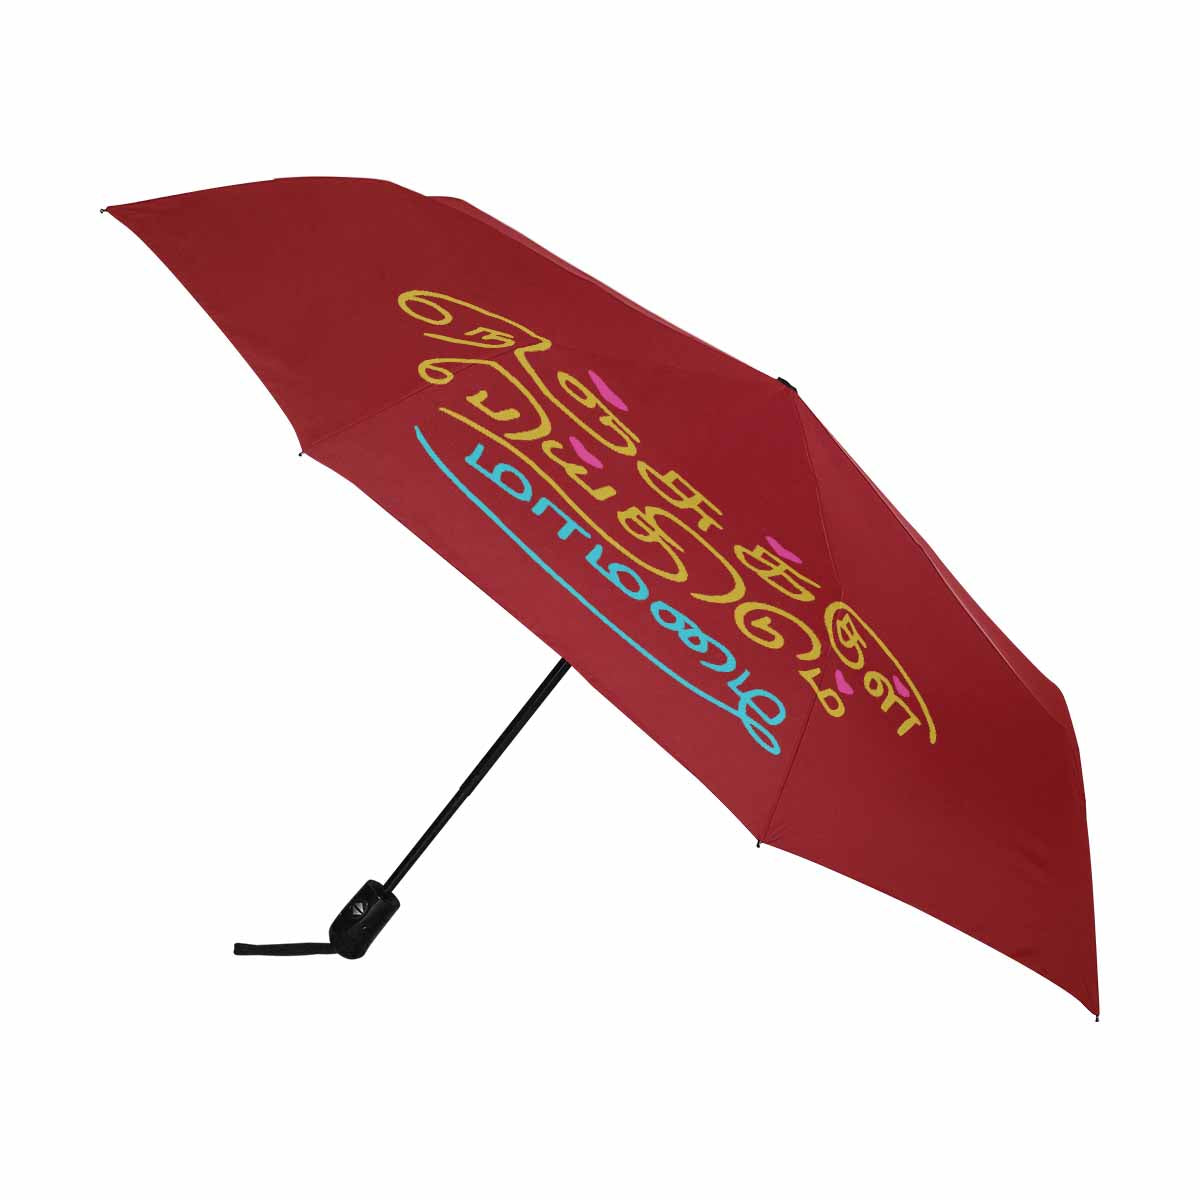 "Nenjukkul Paeithidum Maamazhai 21"" Anti-UV Automatic Umbrella"